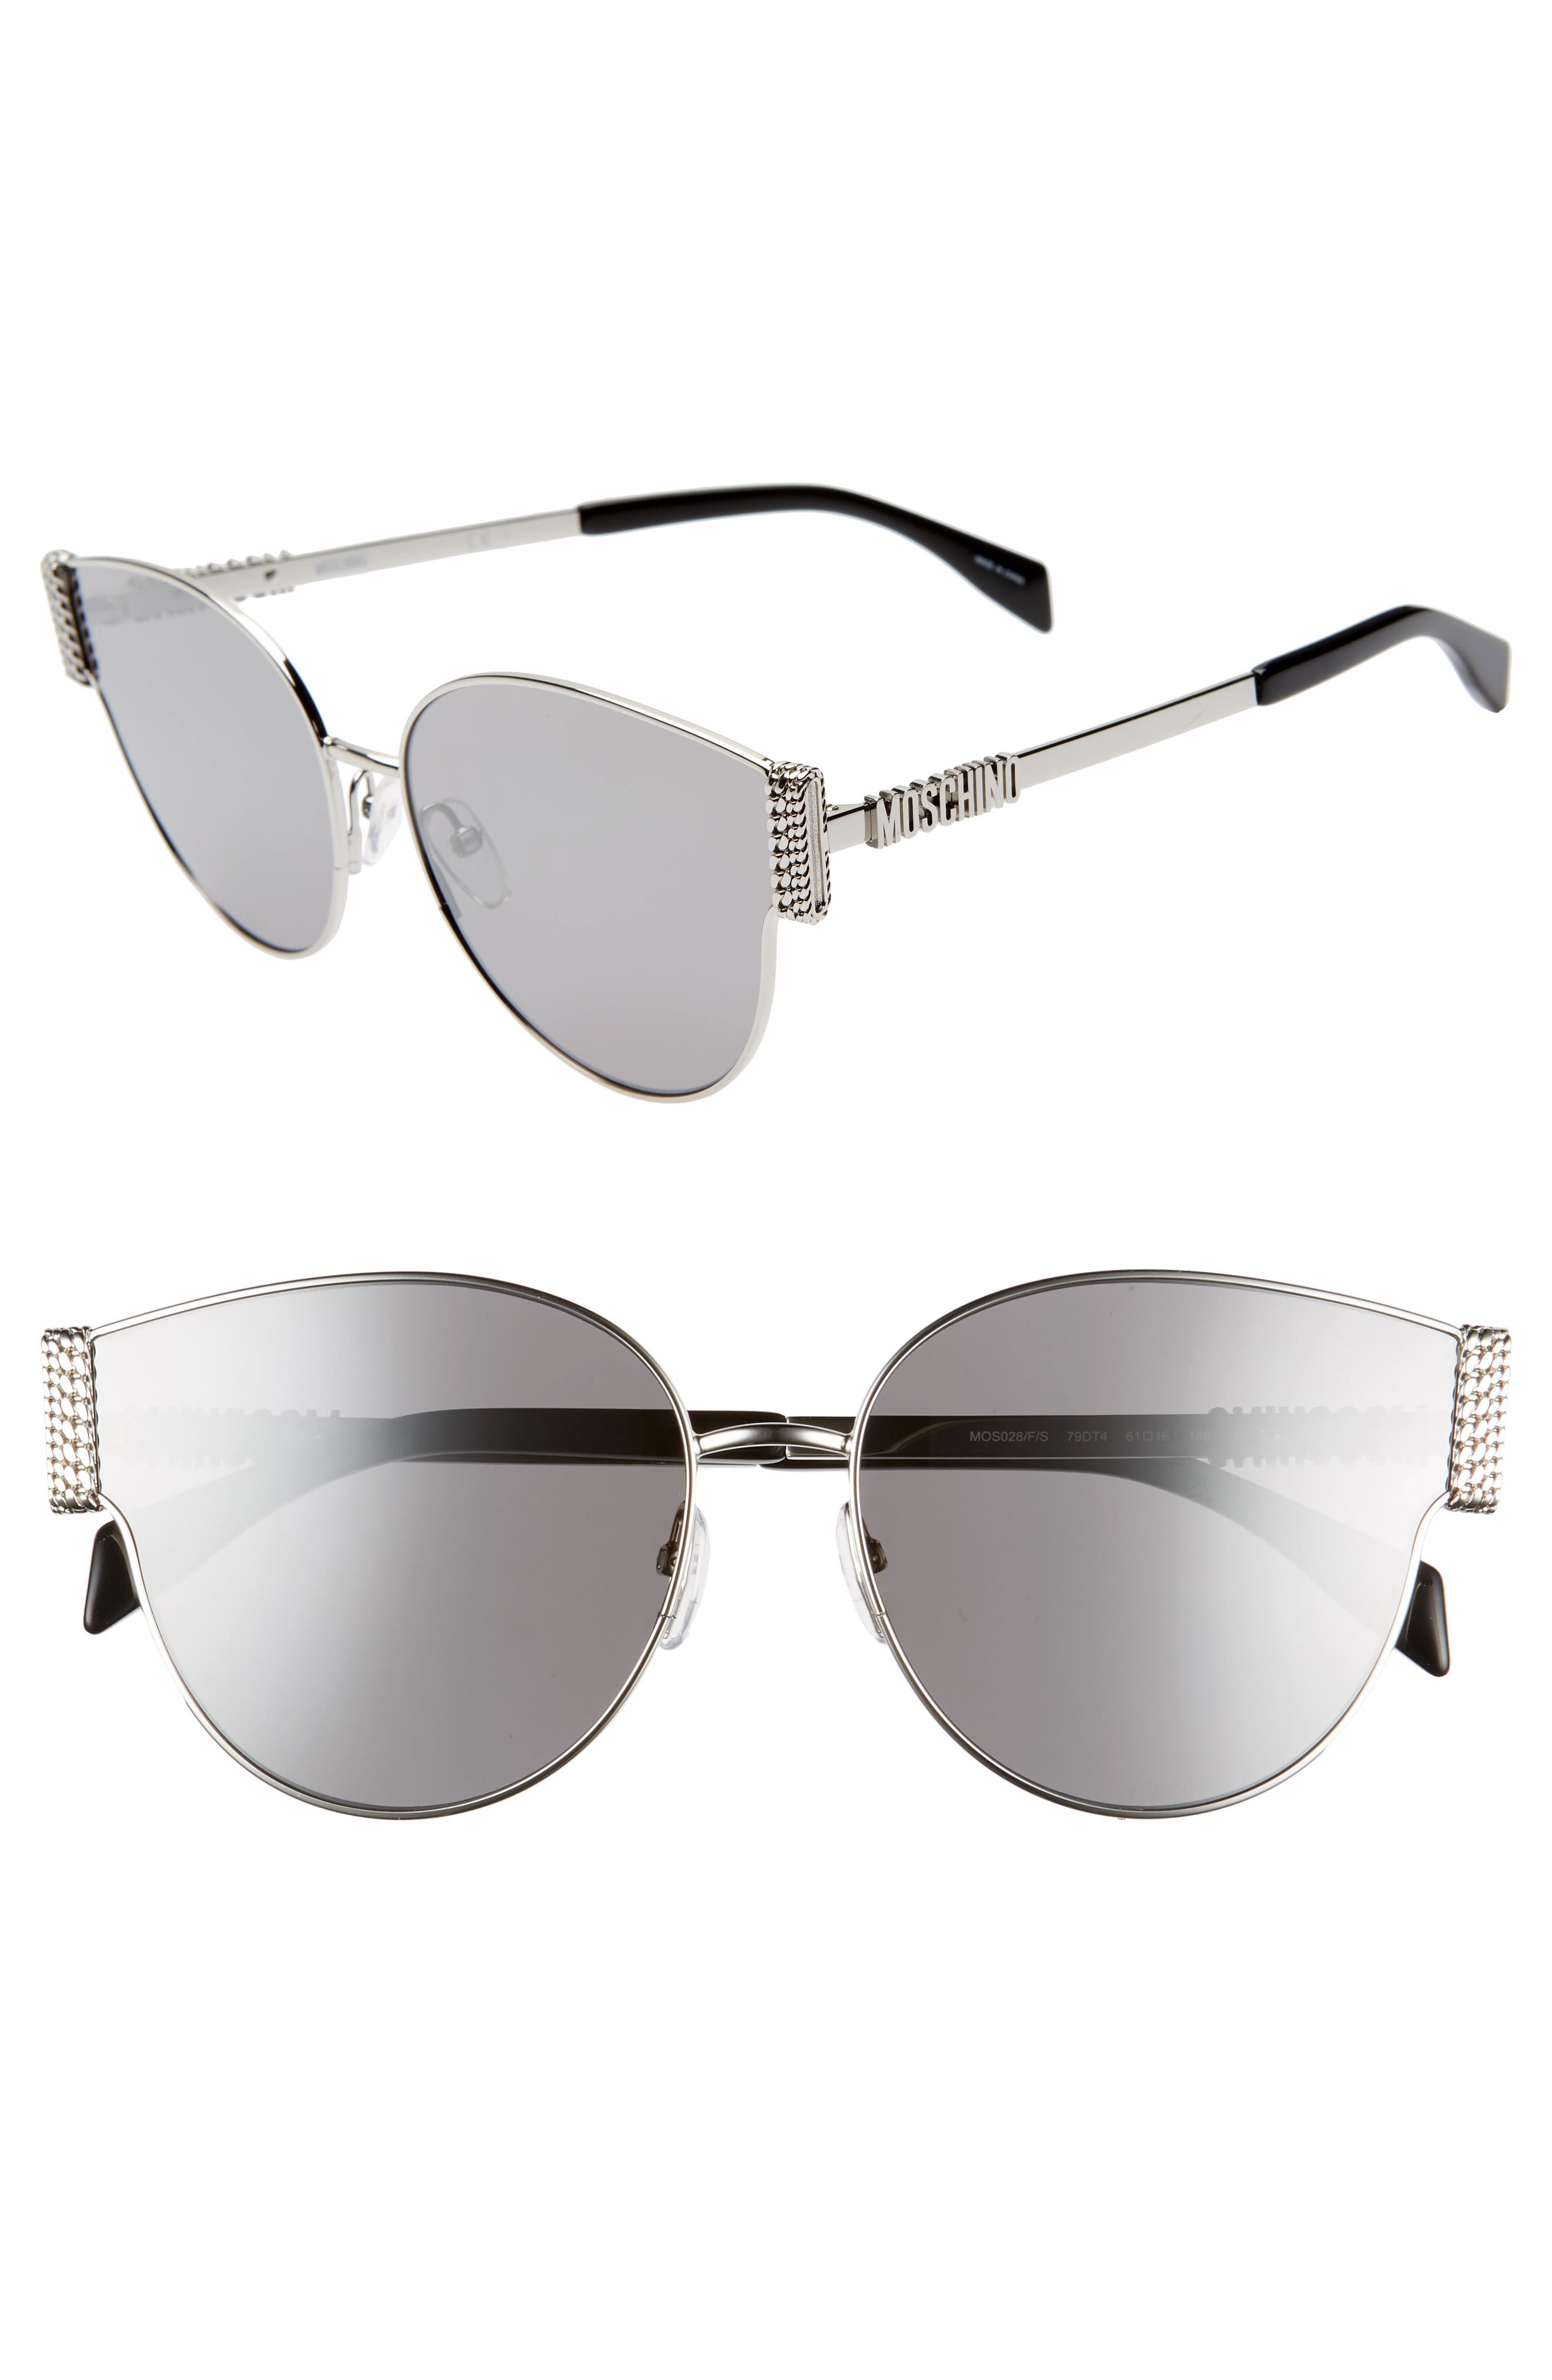 MOSCHINO, 61mm Special Fit Cat Eye Sunglasses, Main thumbnail 1, color, SILVER/ BLACK